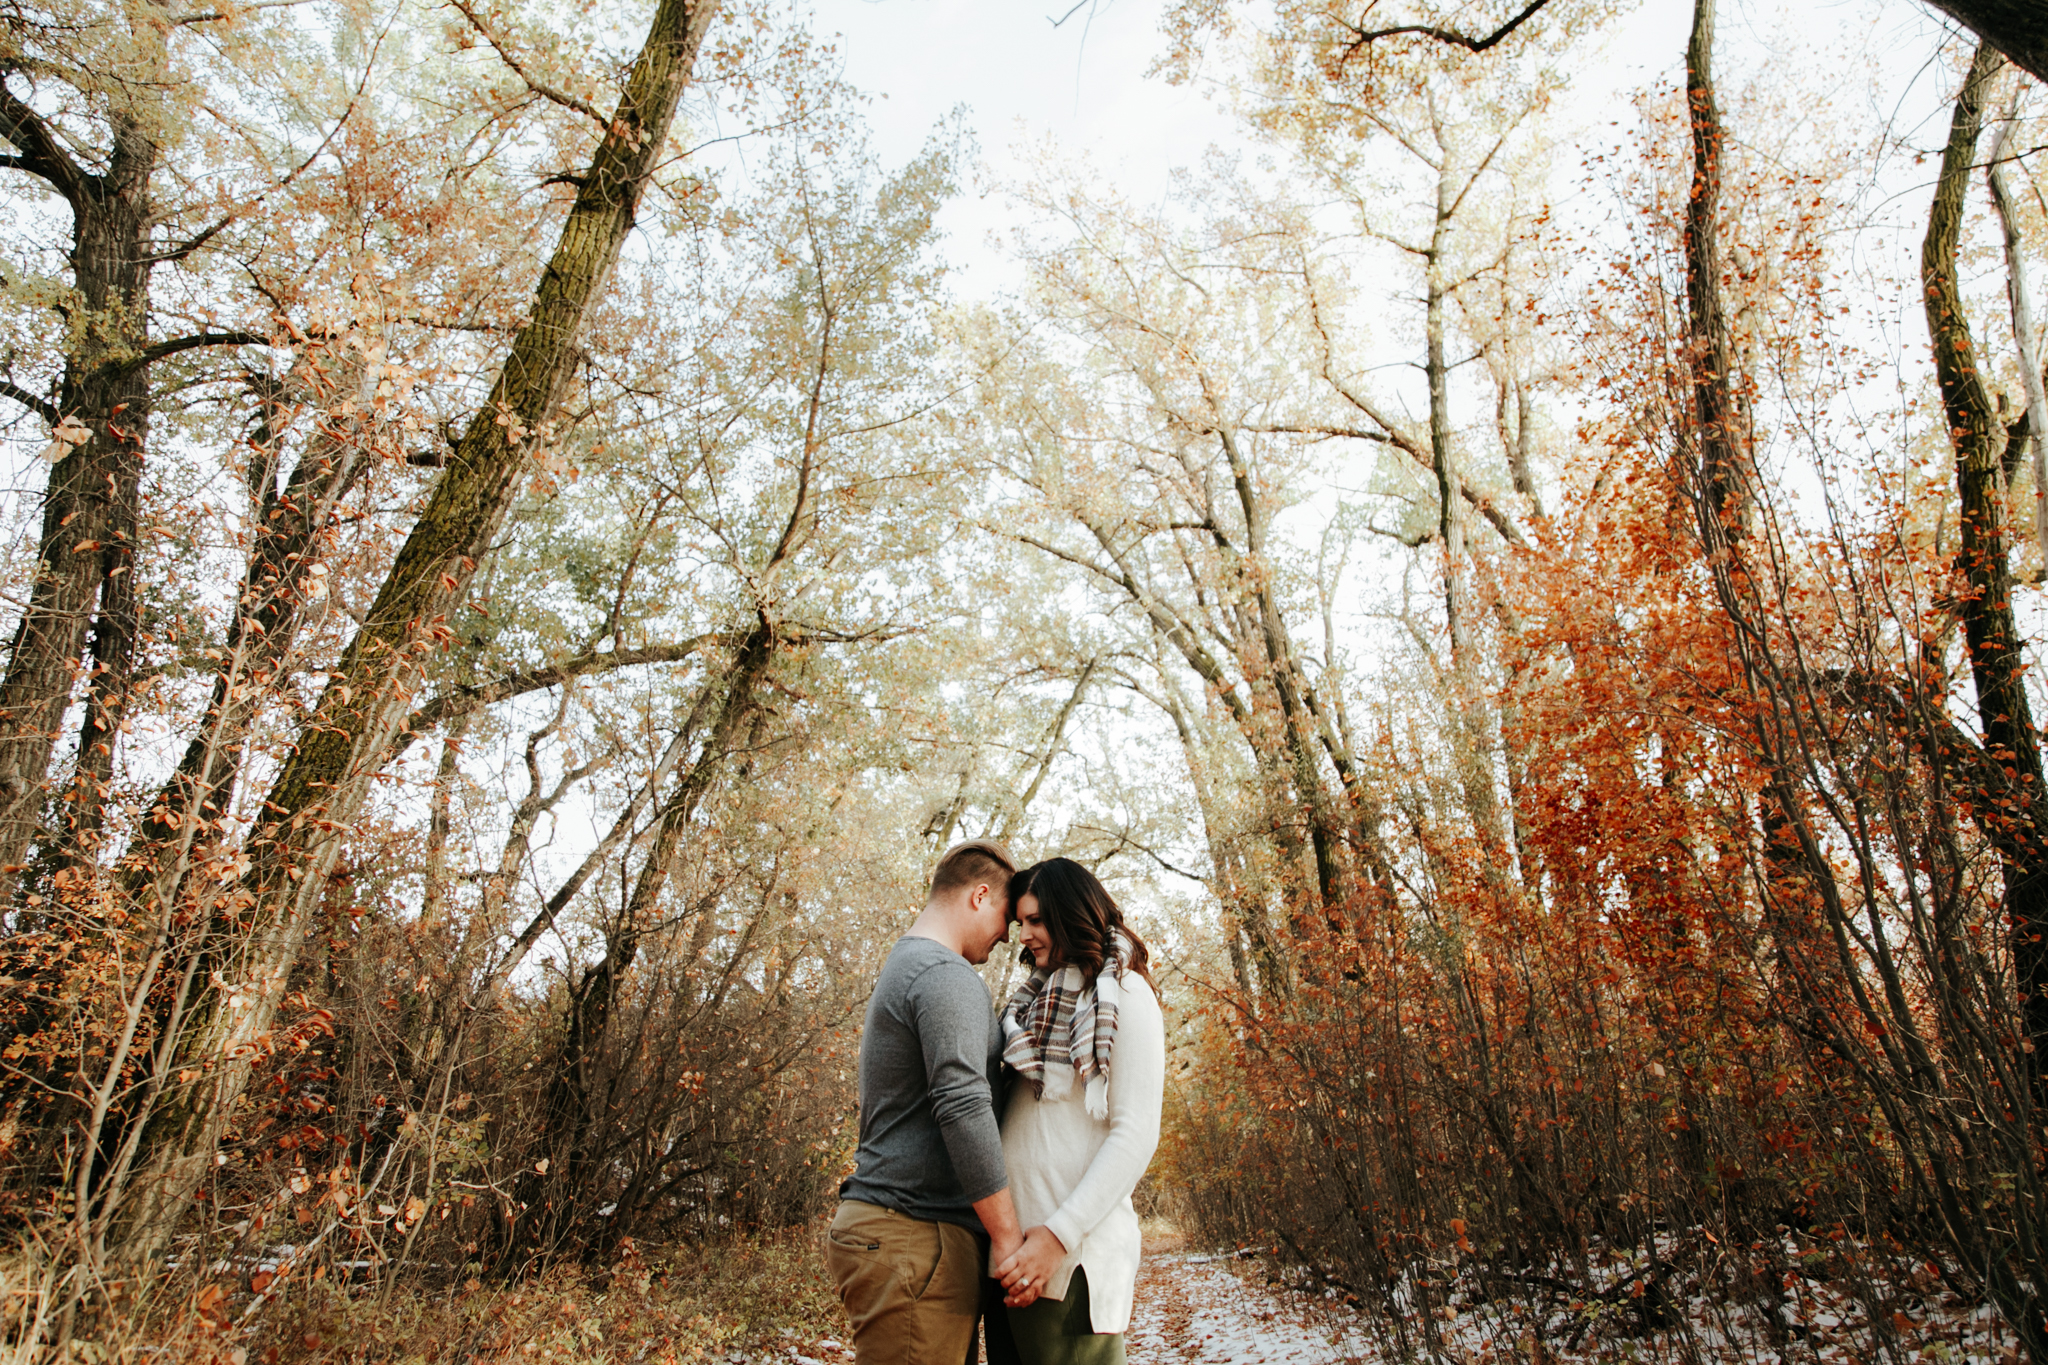 lethbridge-photographer-love-and-be-loved-photography-christy-bryan-fall-autumn-engagement-photo-image-picture-12.jpg